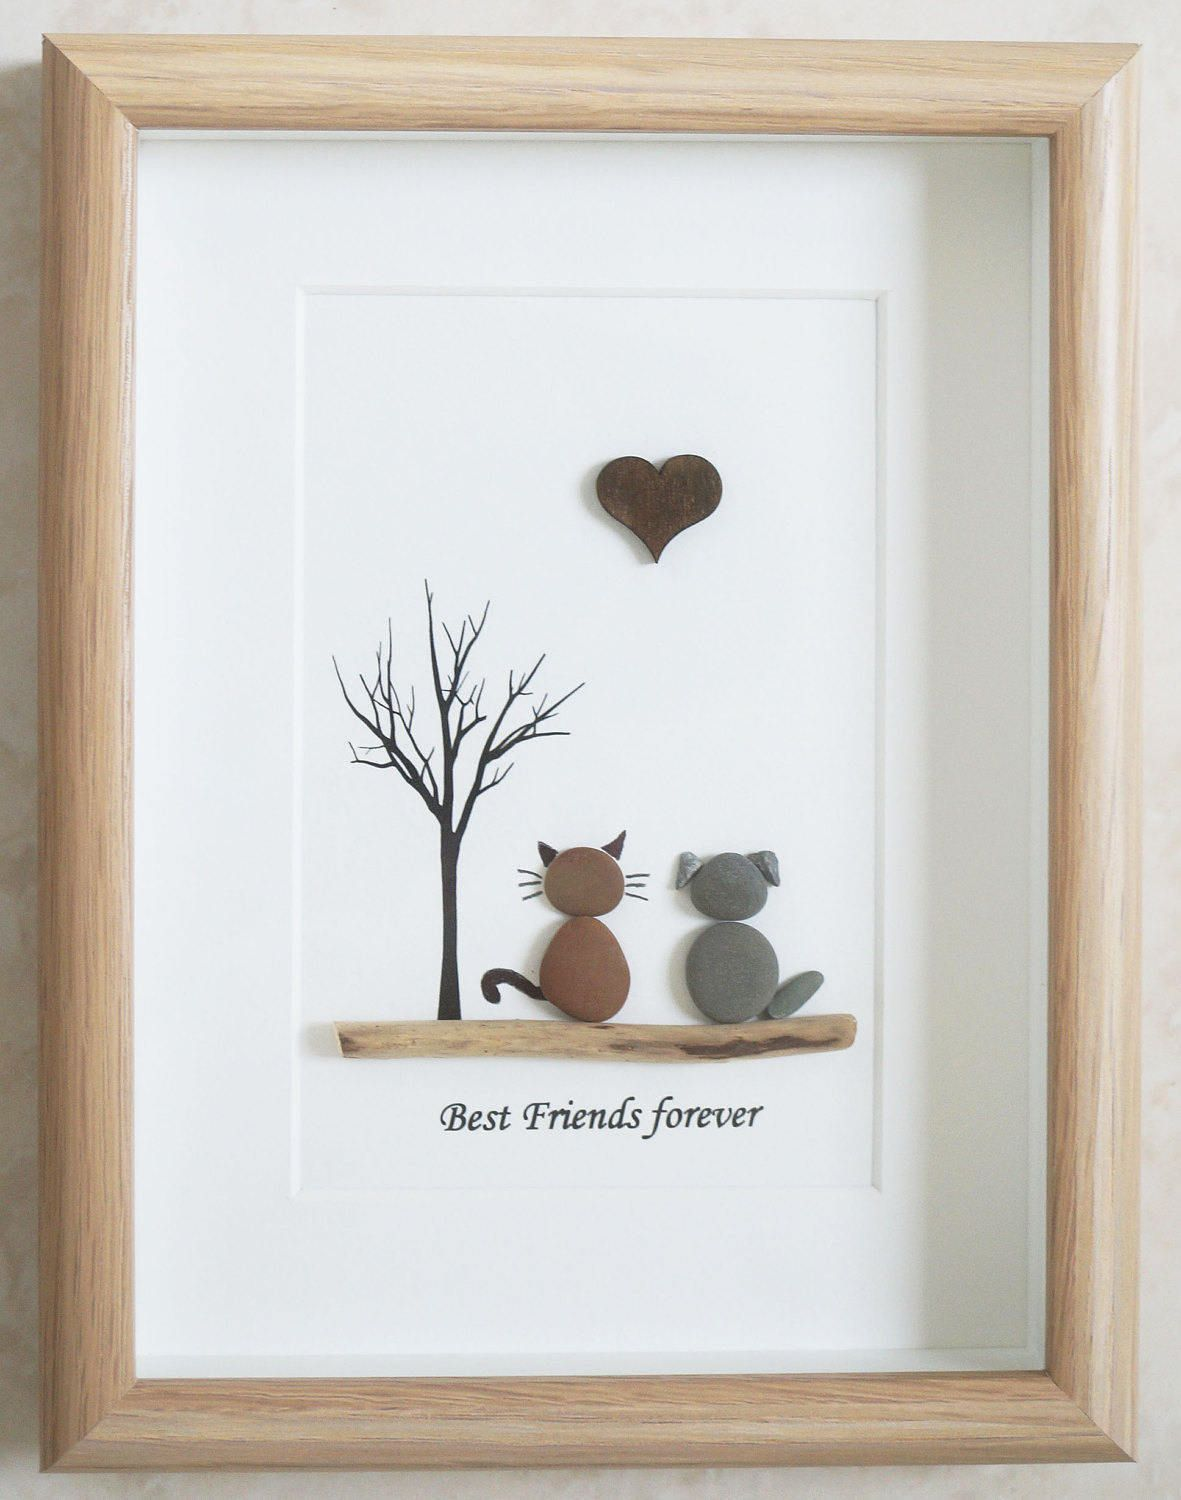 Pebble Art framed Picture - Dog and Cat - Best Friends forever ...